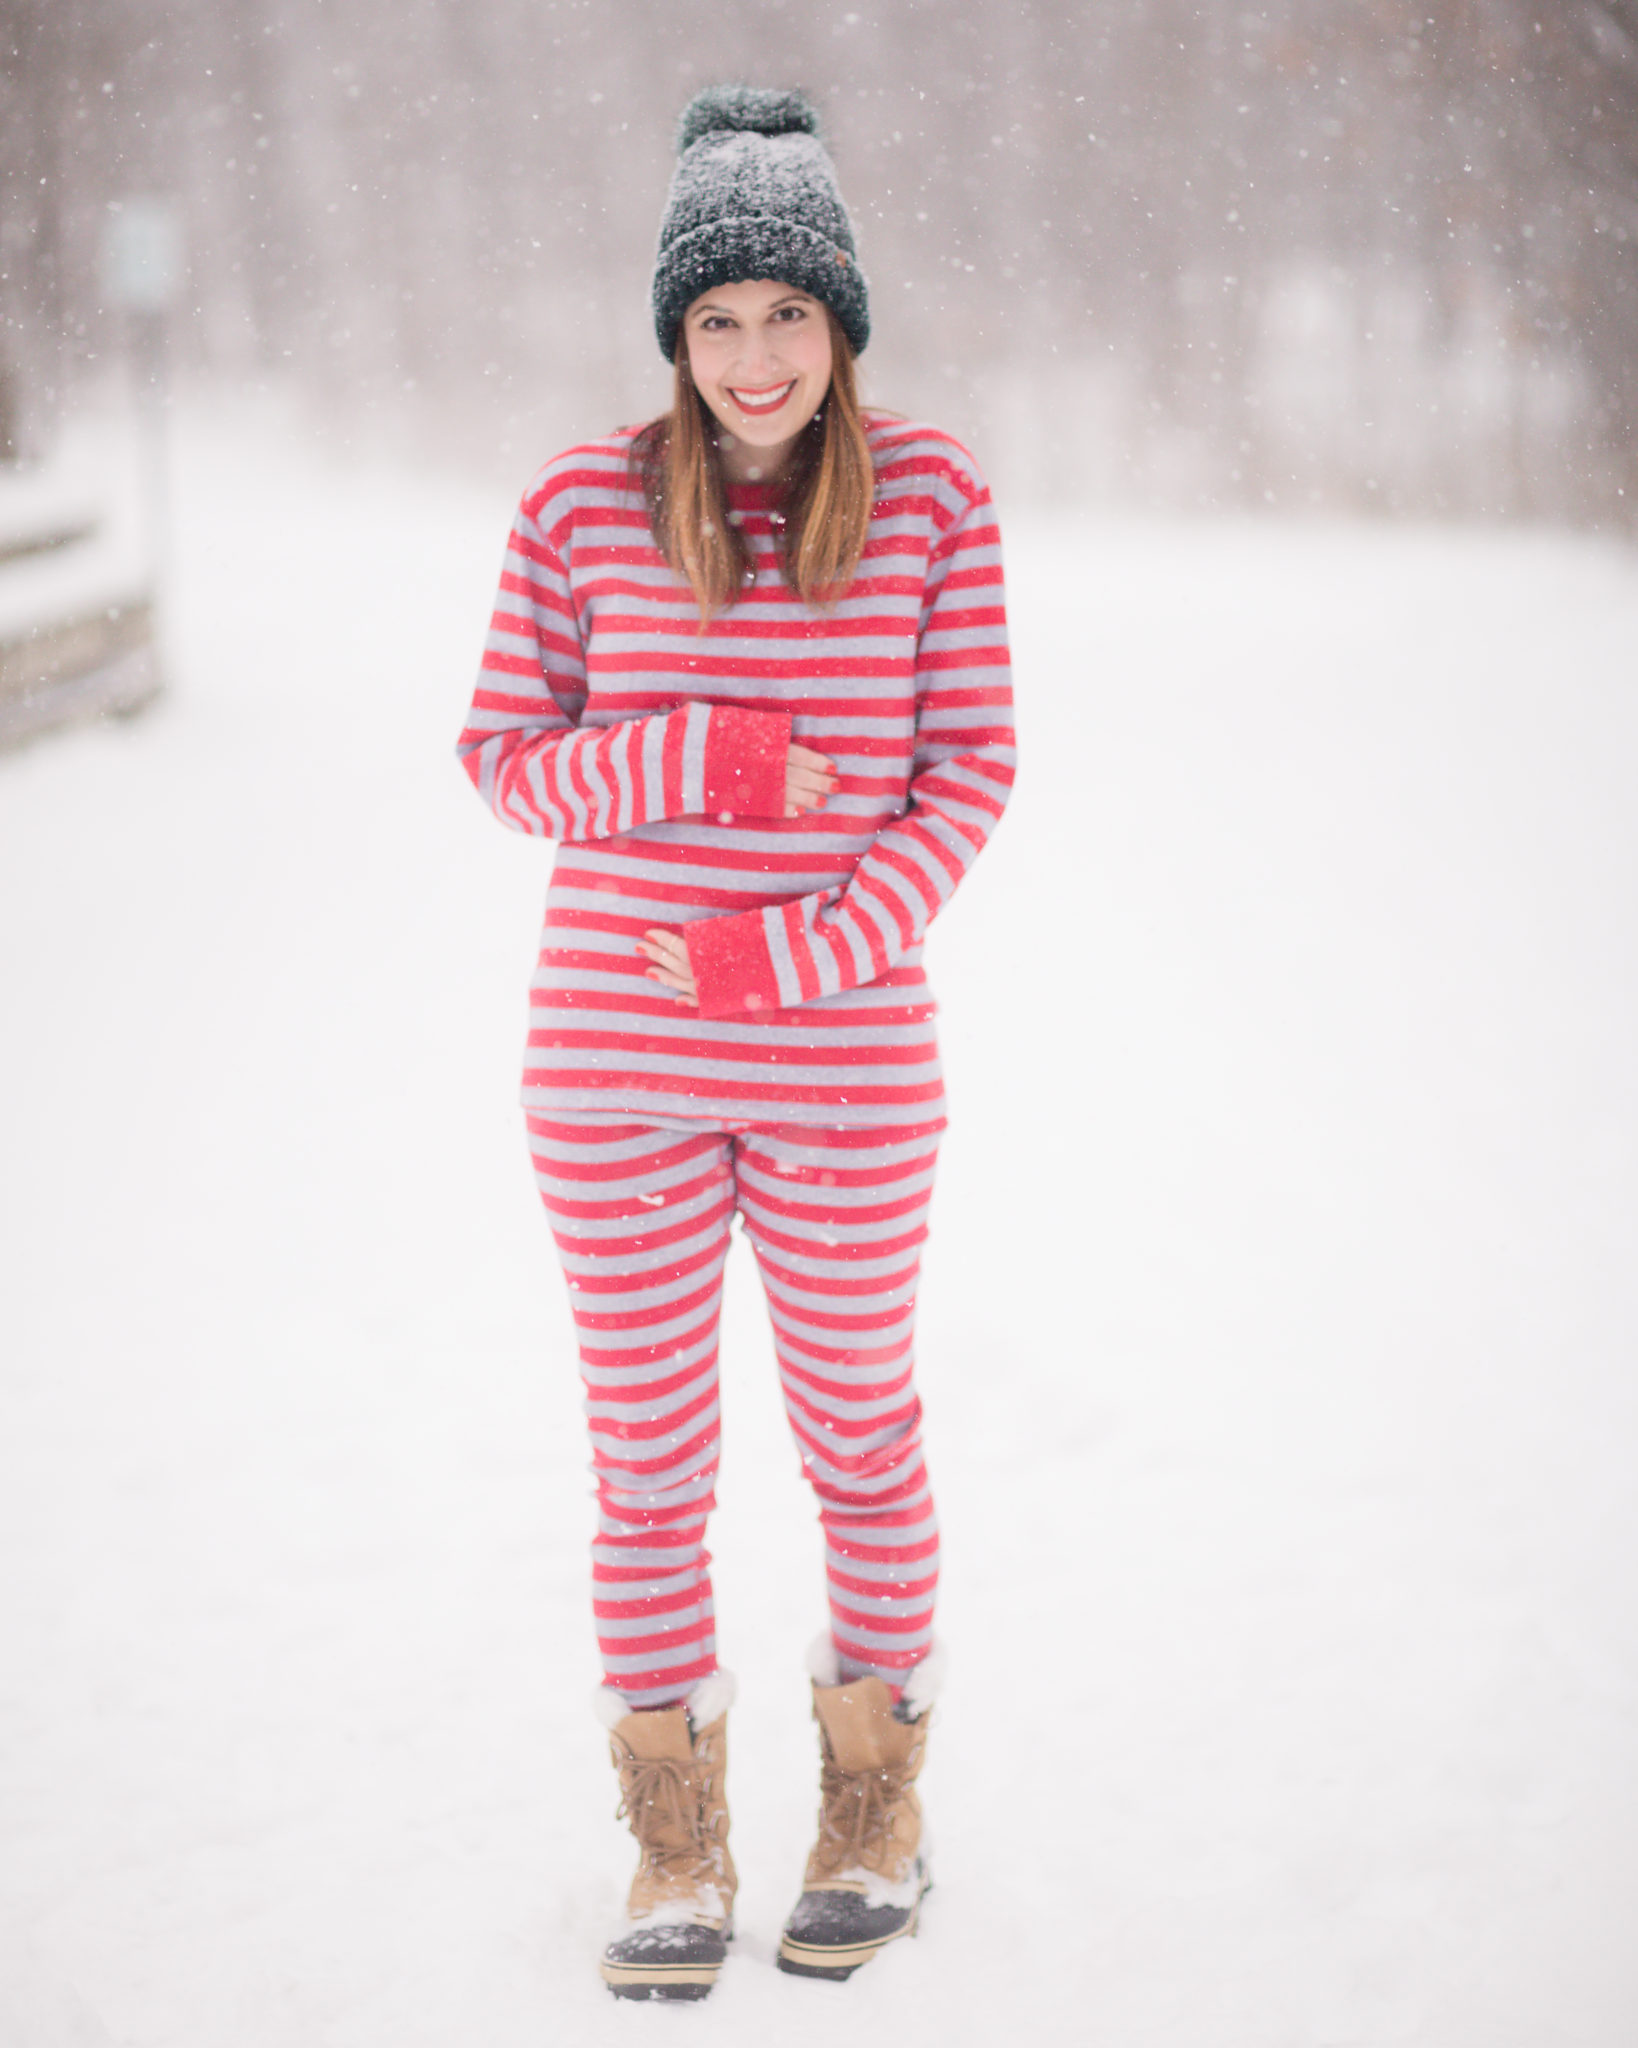 winter pregnancy announcement | hanna andersson matching family pajamas | second pregnancy announcement on allweareblog.com